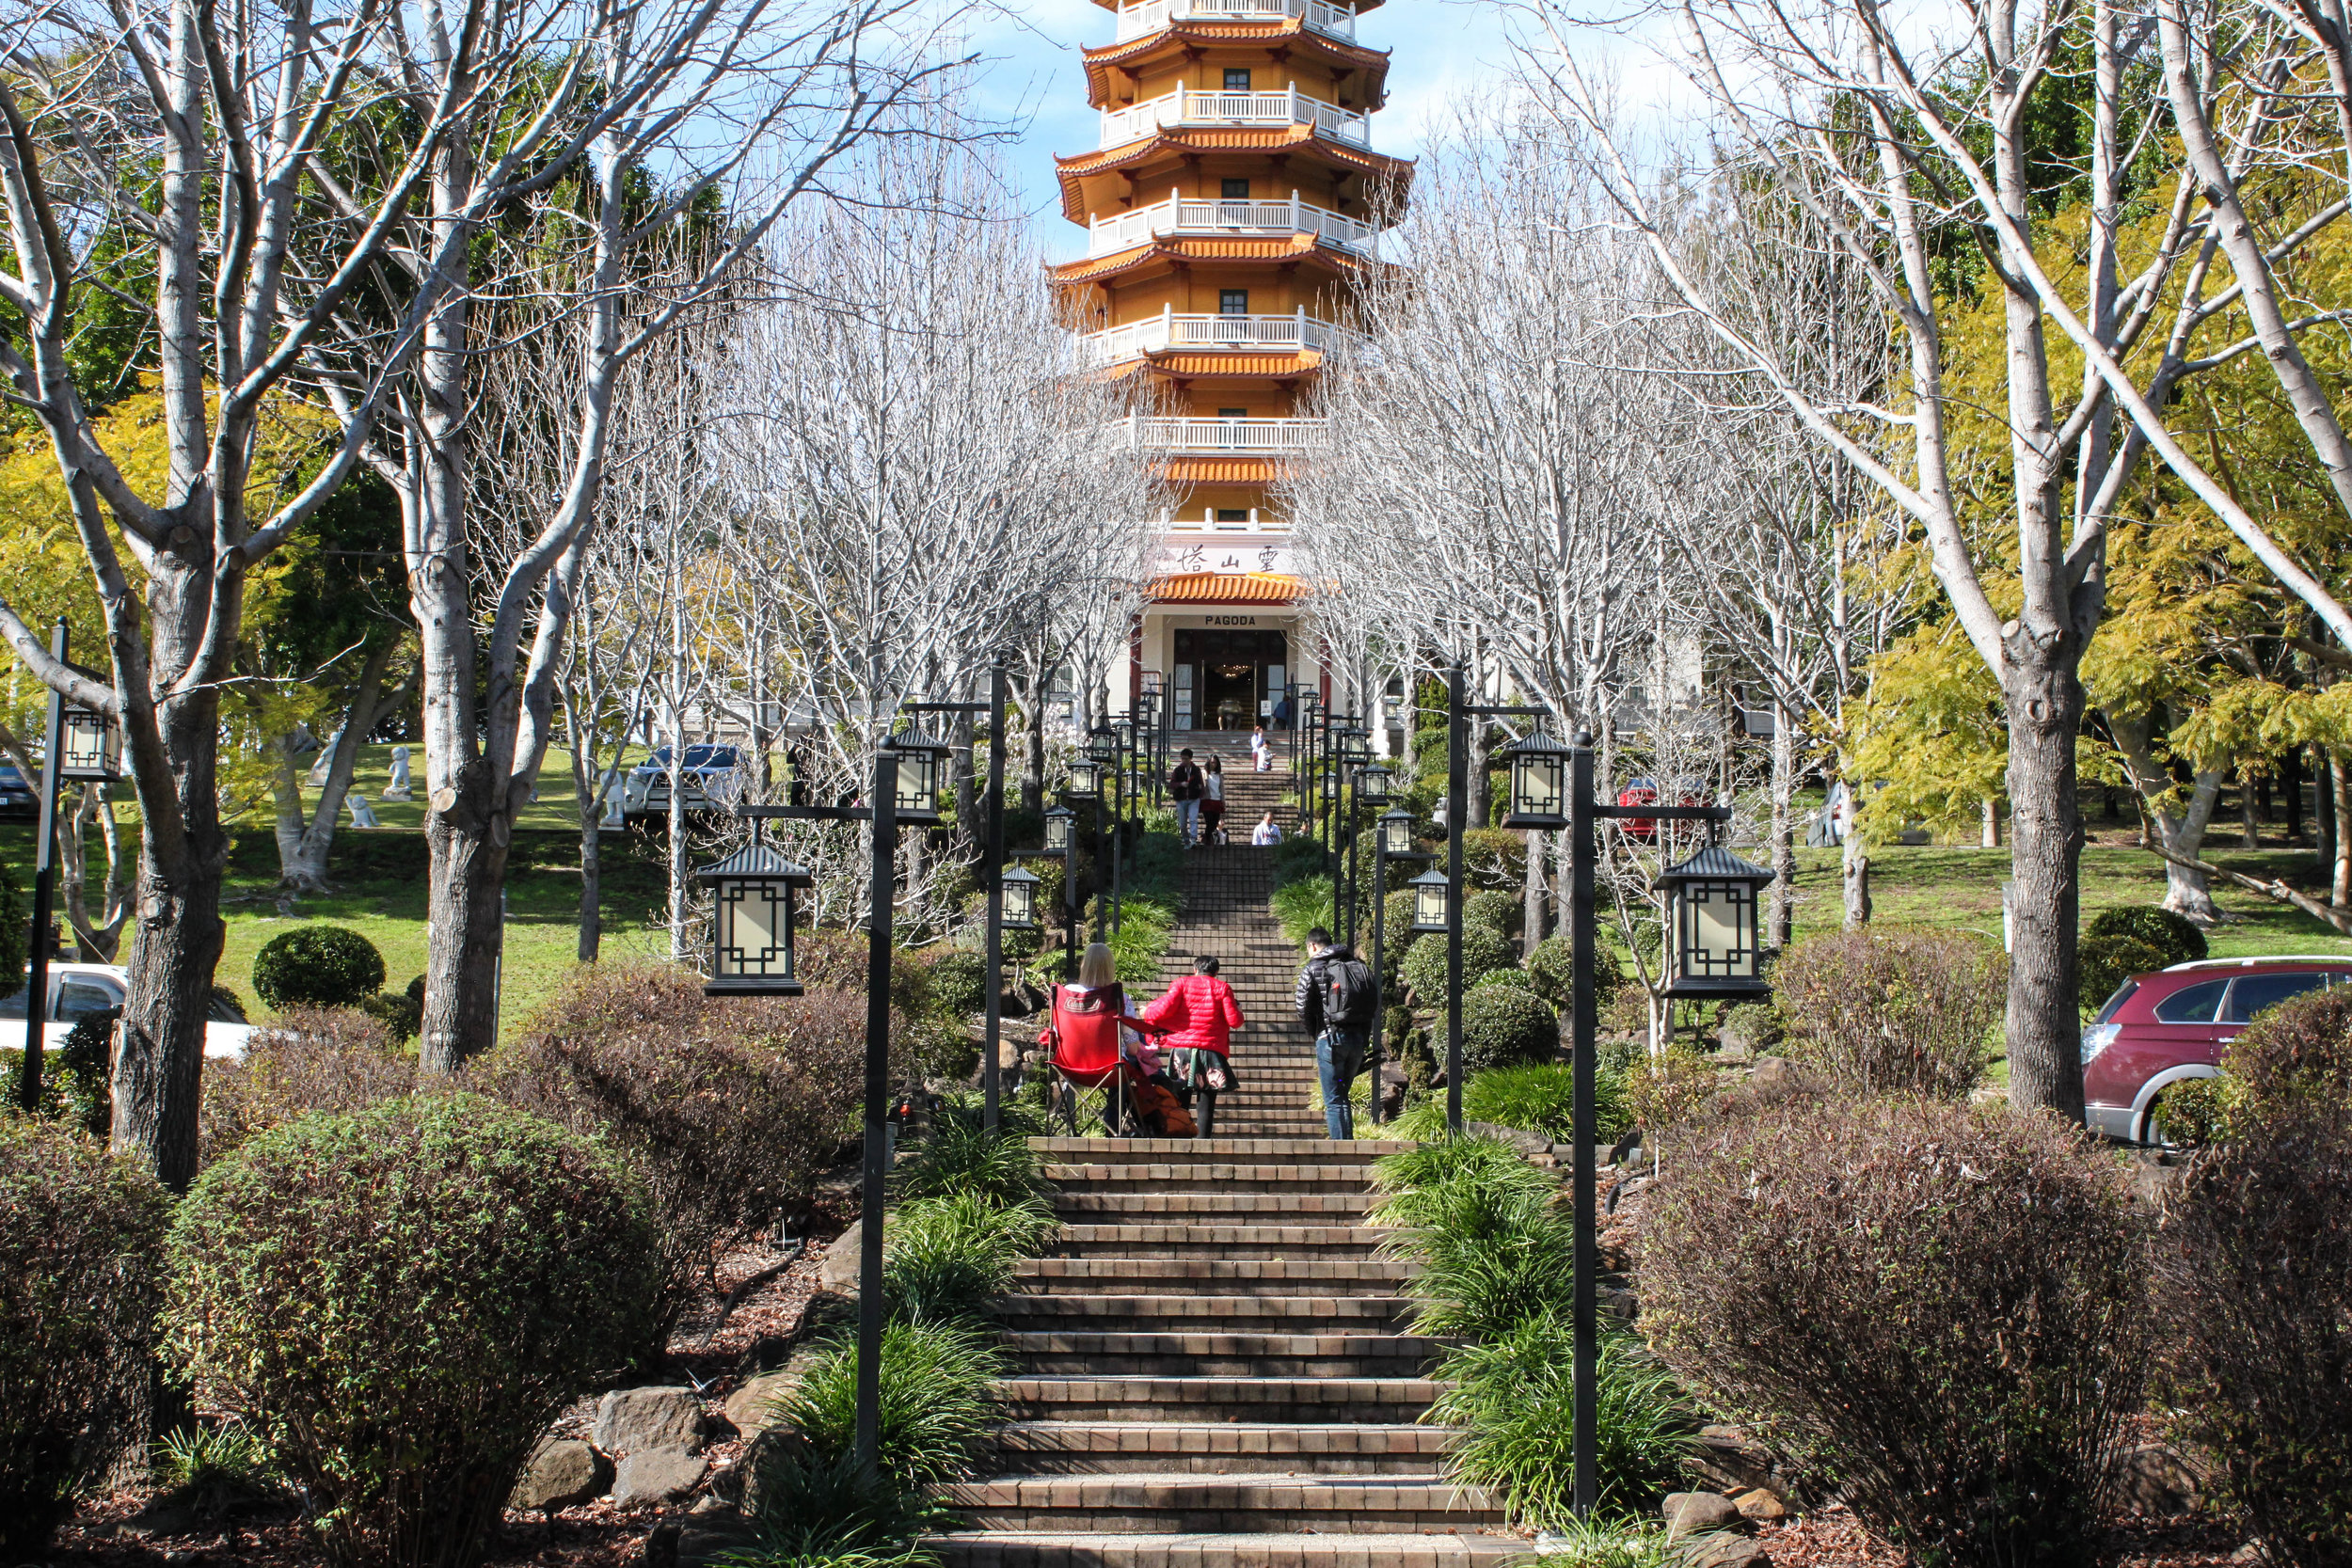 Stairs to the Pagoda